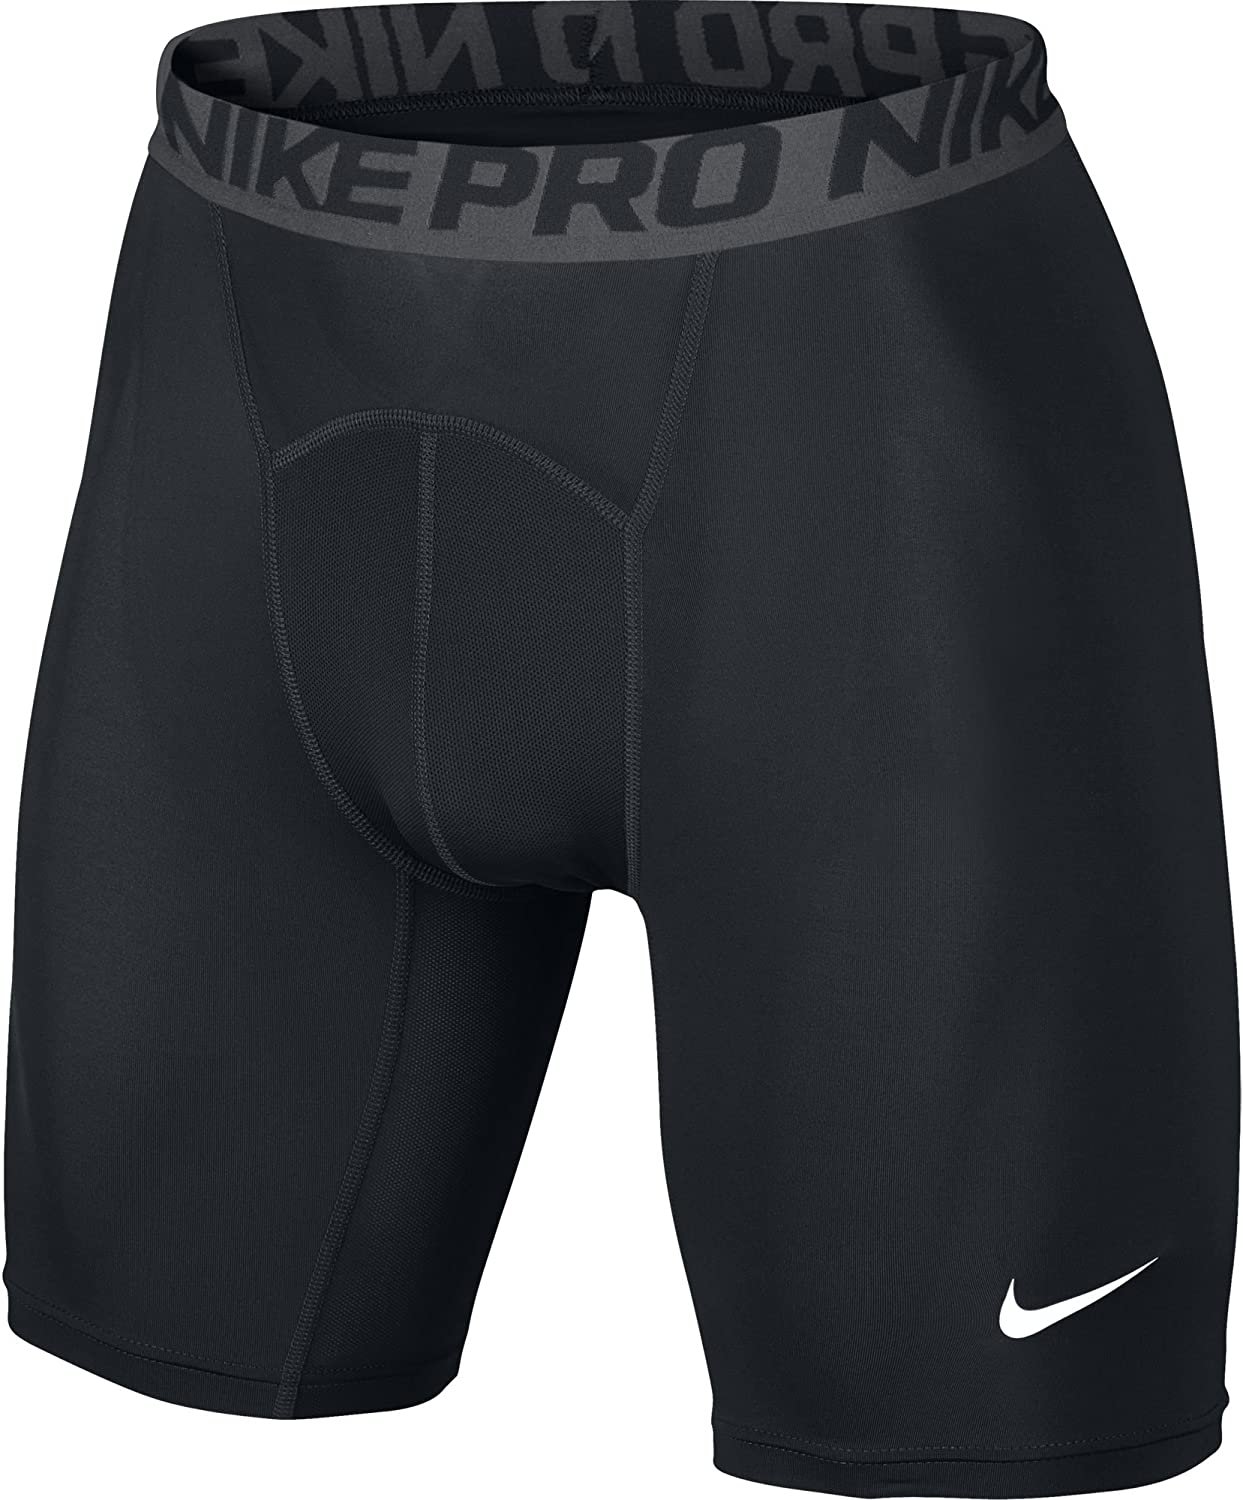 nike pro cool compression shorts